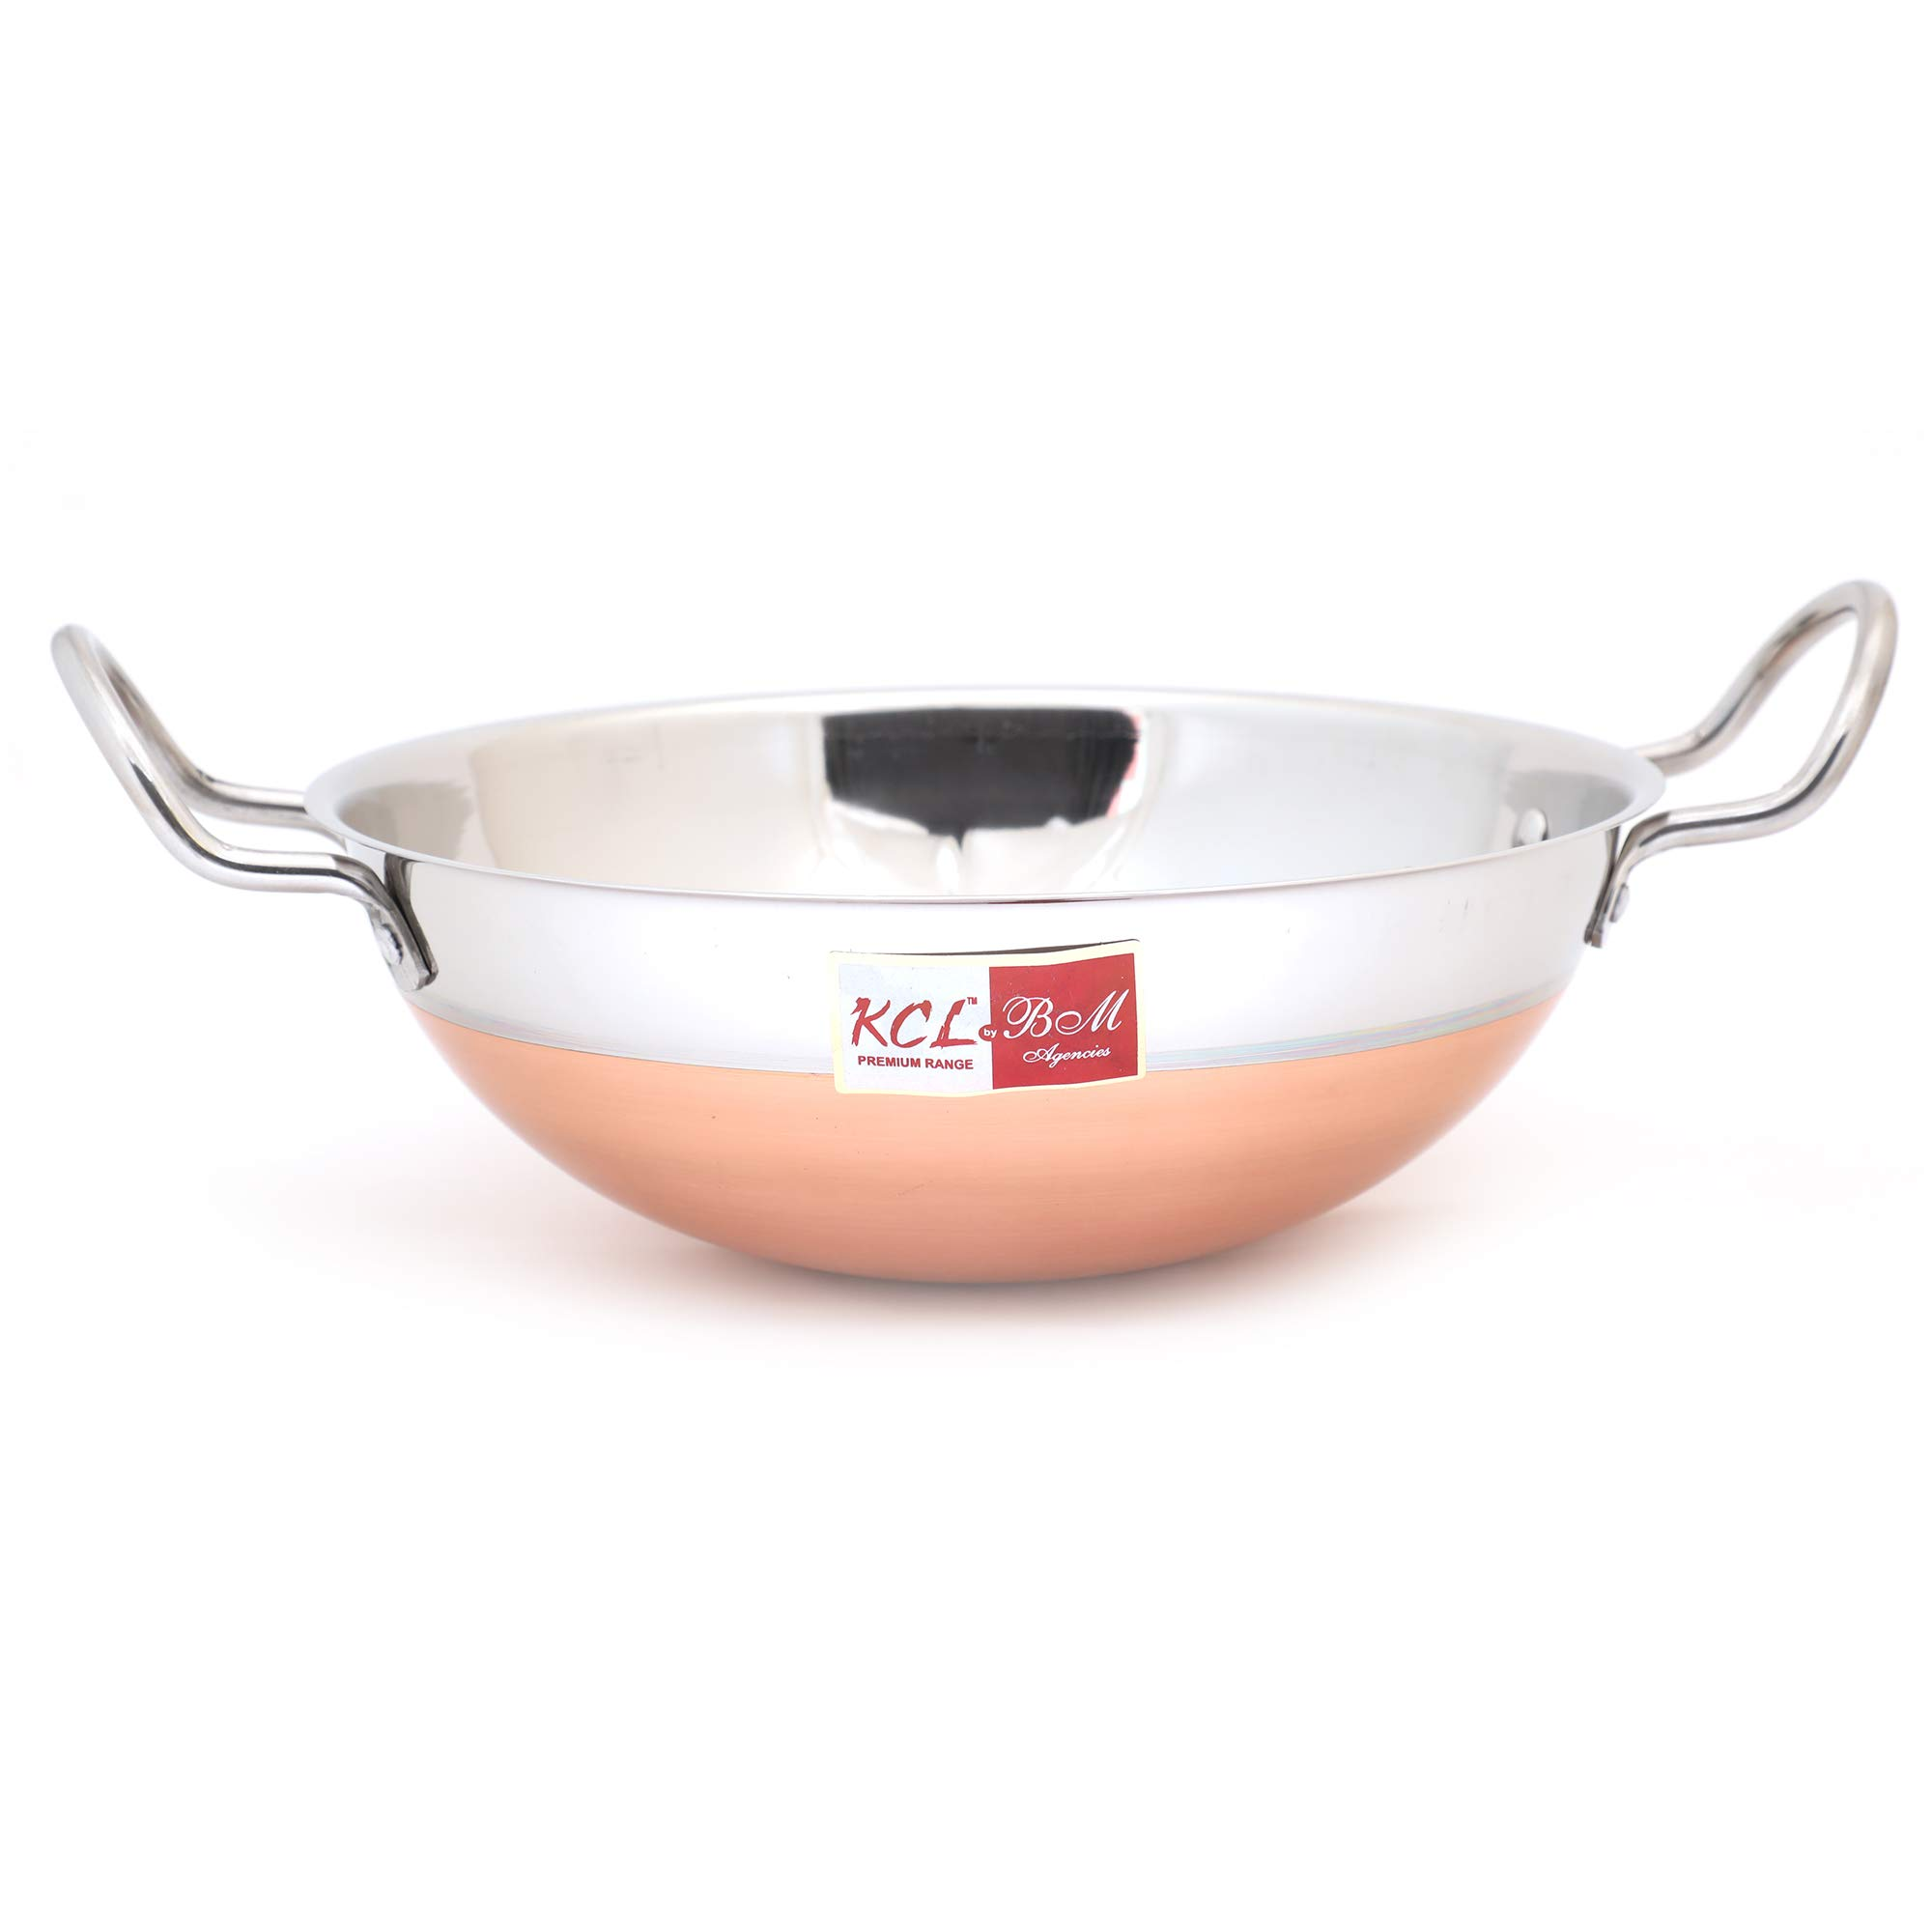 KCL Stainless Steel Copper Bottom Kadai Without Lid Cookware -1 Unit - Capacity - 1000ML,Diameter - 23 cm